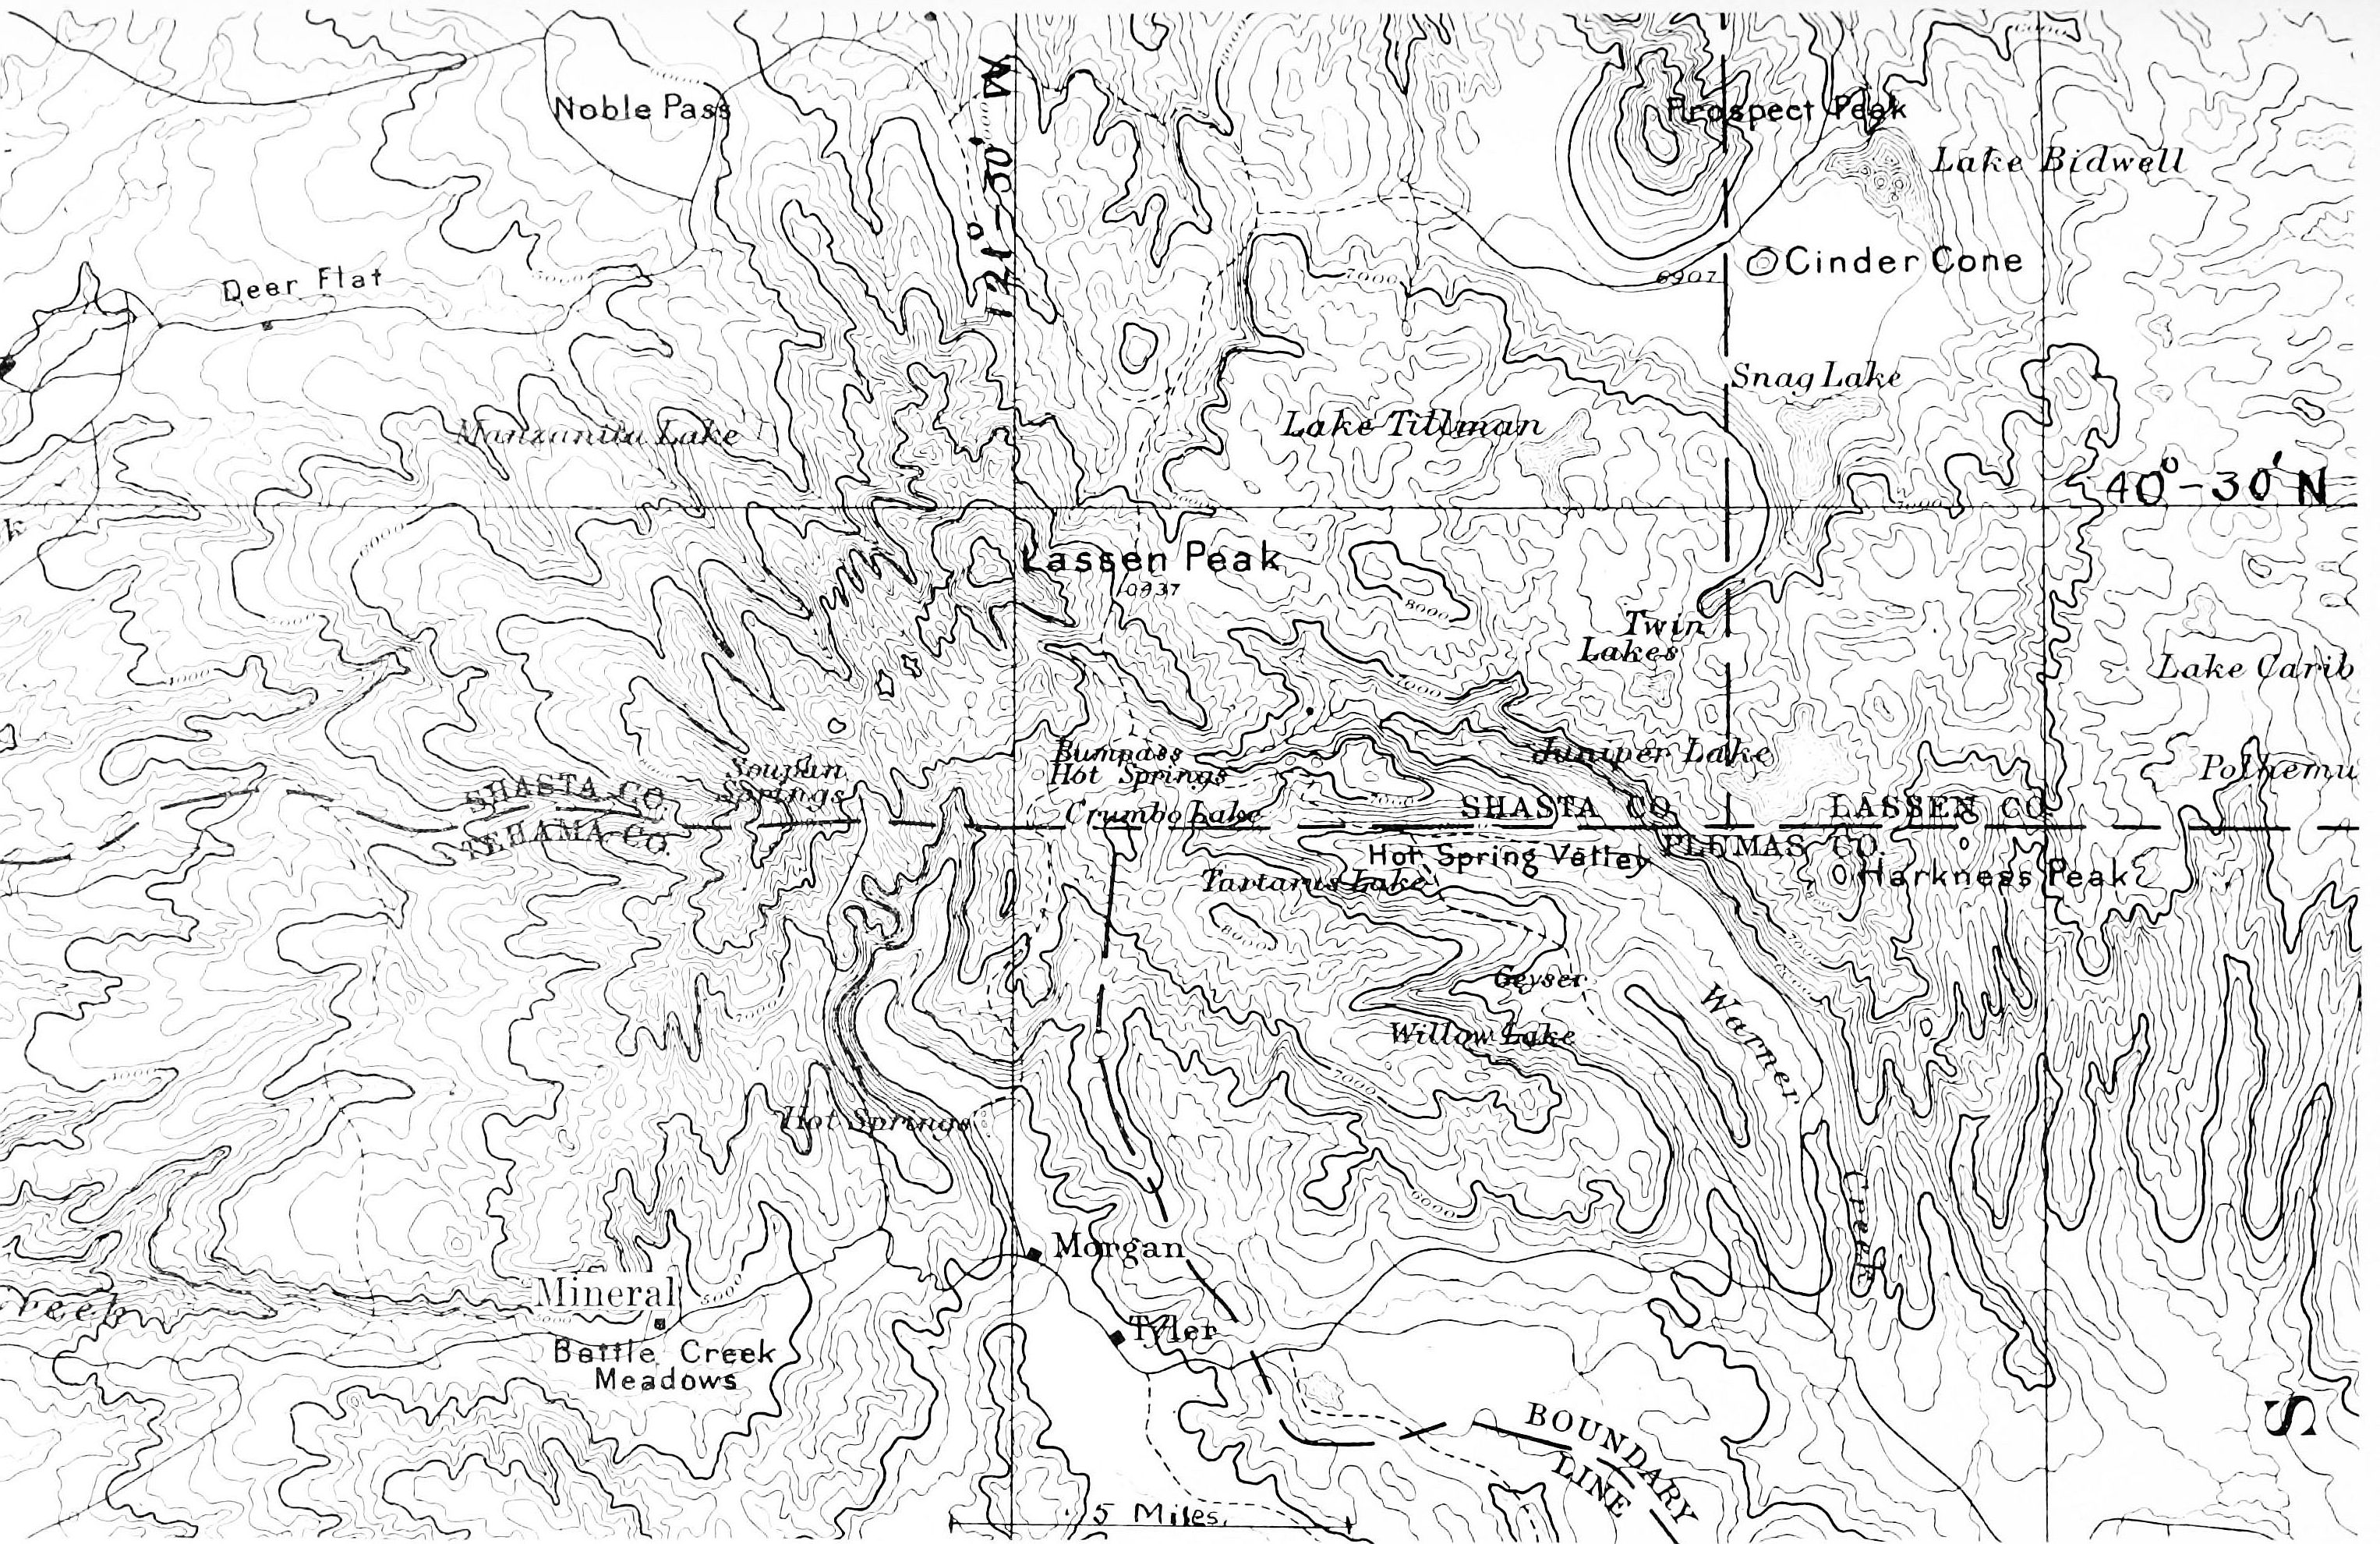 PSM V86 D295 The 1882 usgs survey of lassen peak and vicinity.jpg